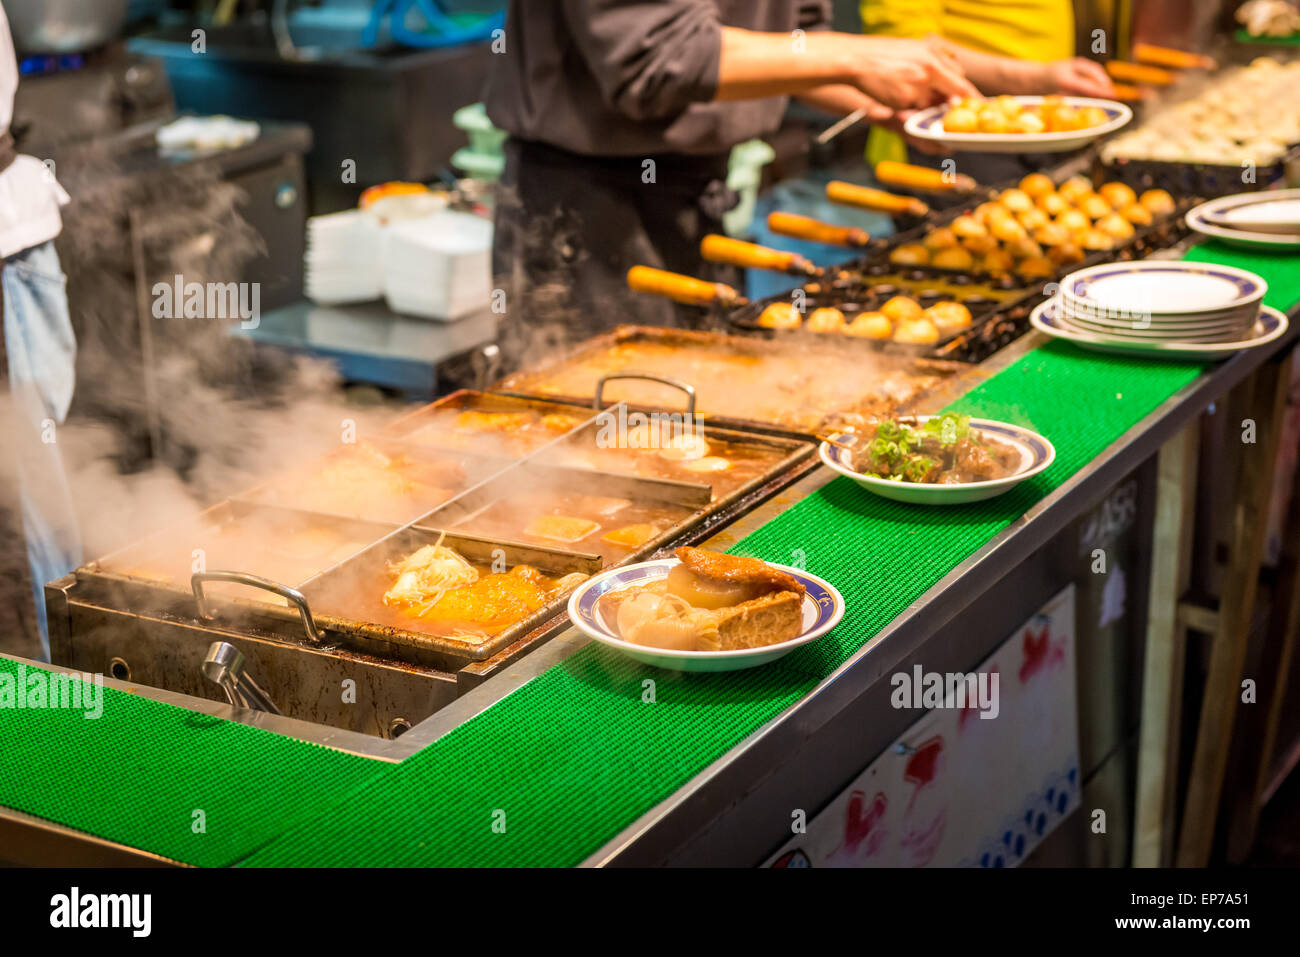 Ramen and oden put out on plates at a street food stall in Osaka, Japan. - Stock Image